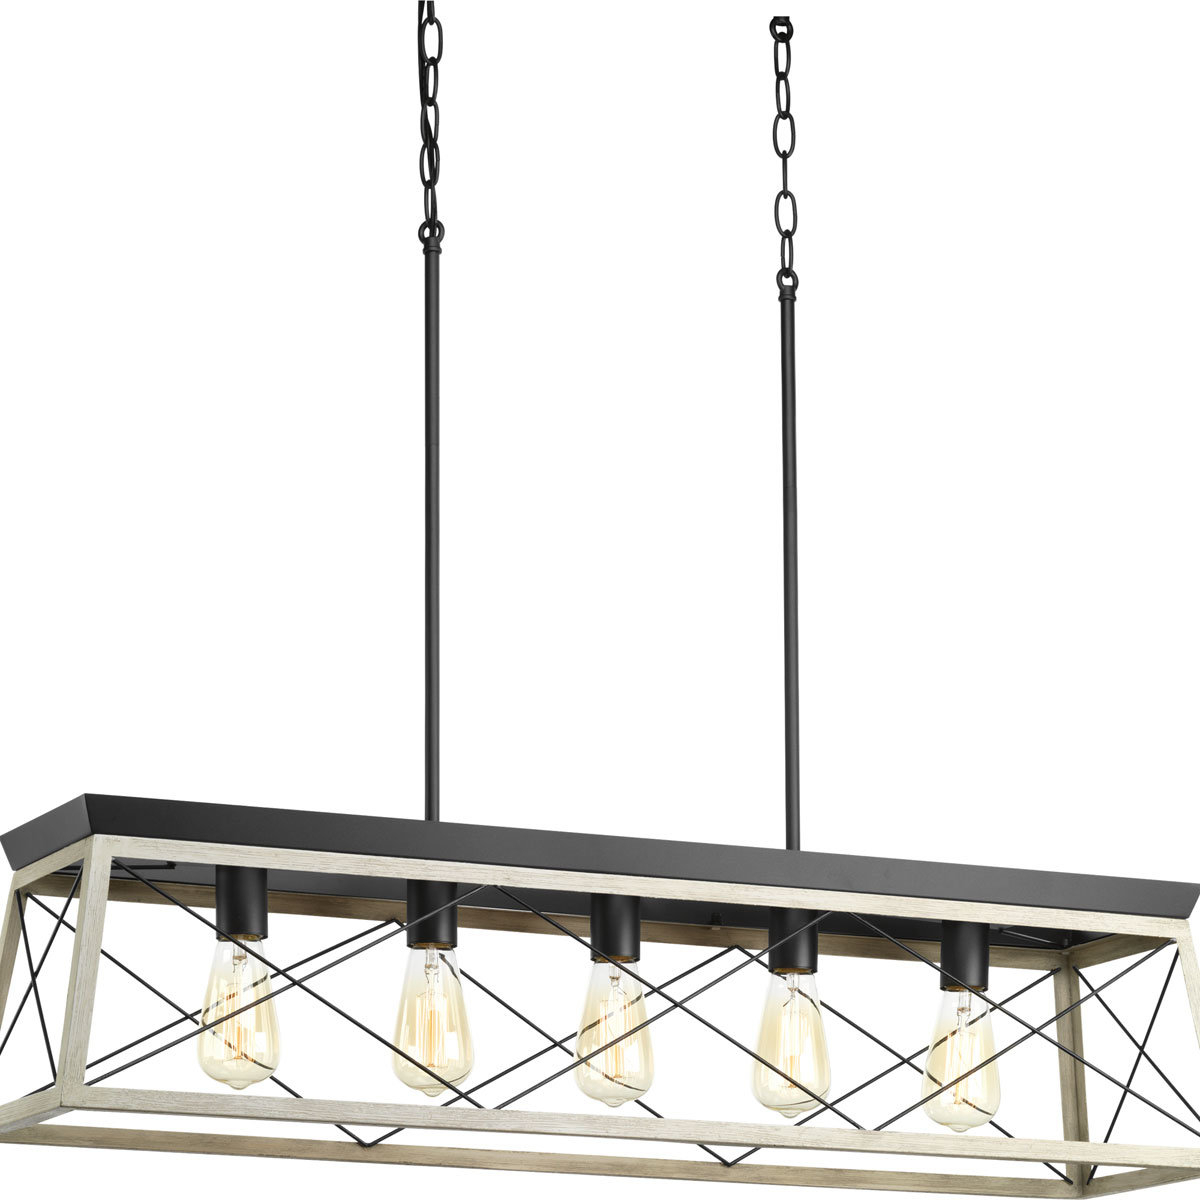 Delon 5 Light Kitchen Island Linear Pendant Intended For Sousa 4 Light Kitchen Island Linear Pendants (View 24 of 30)